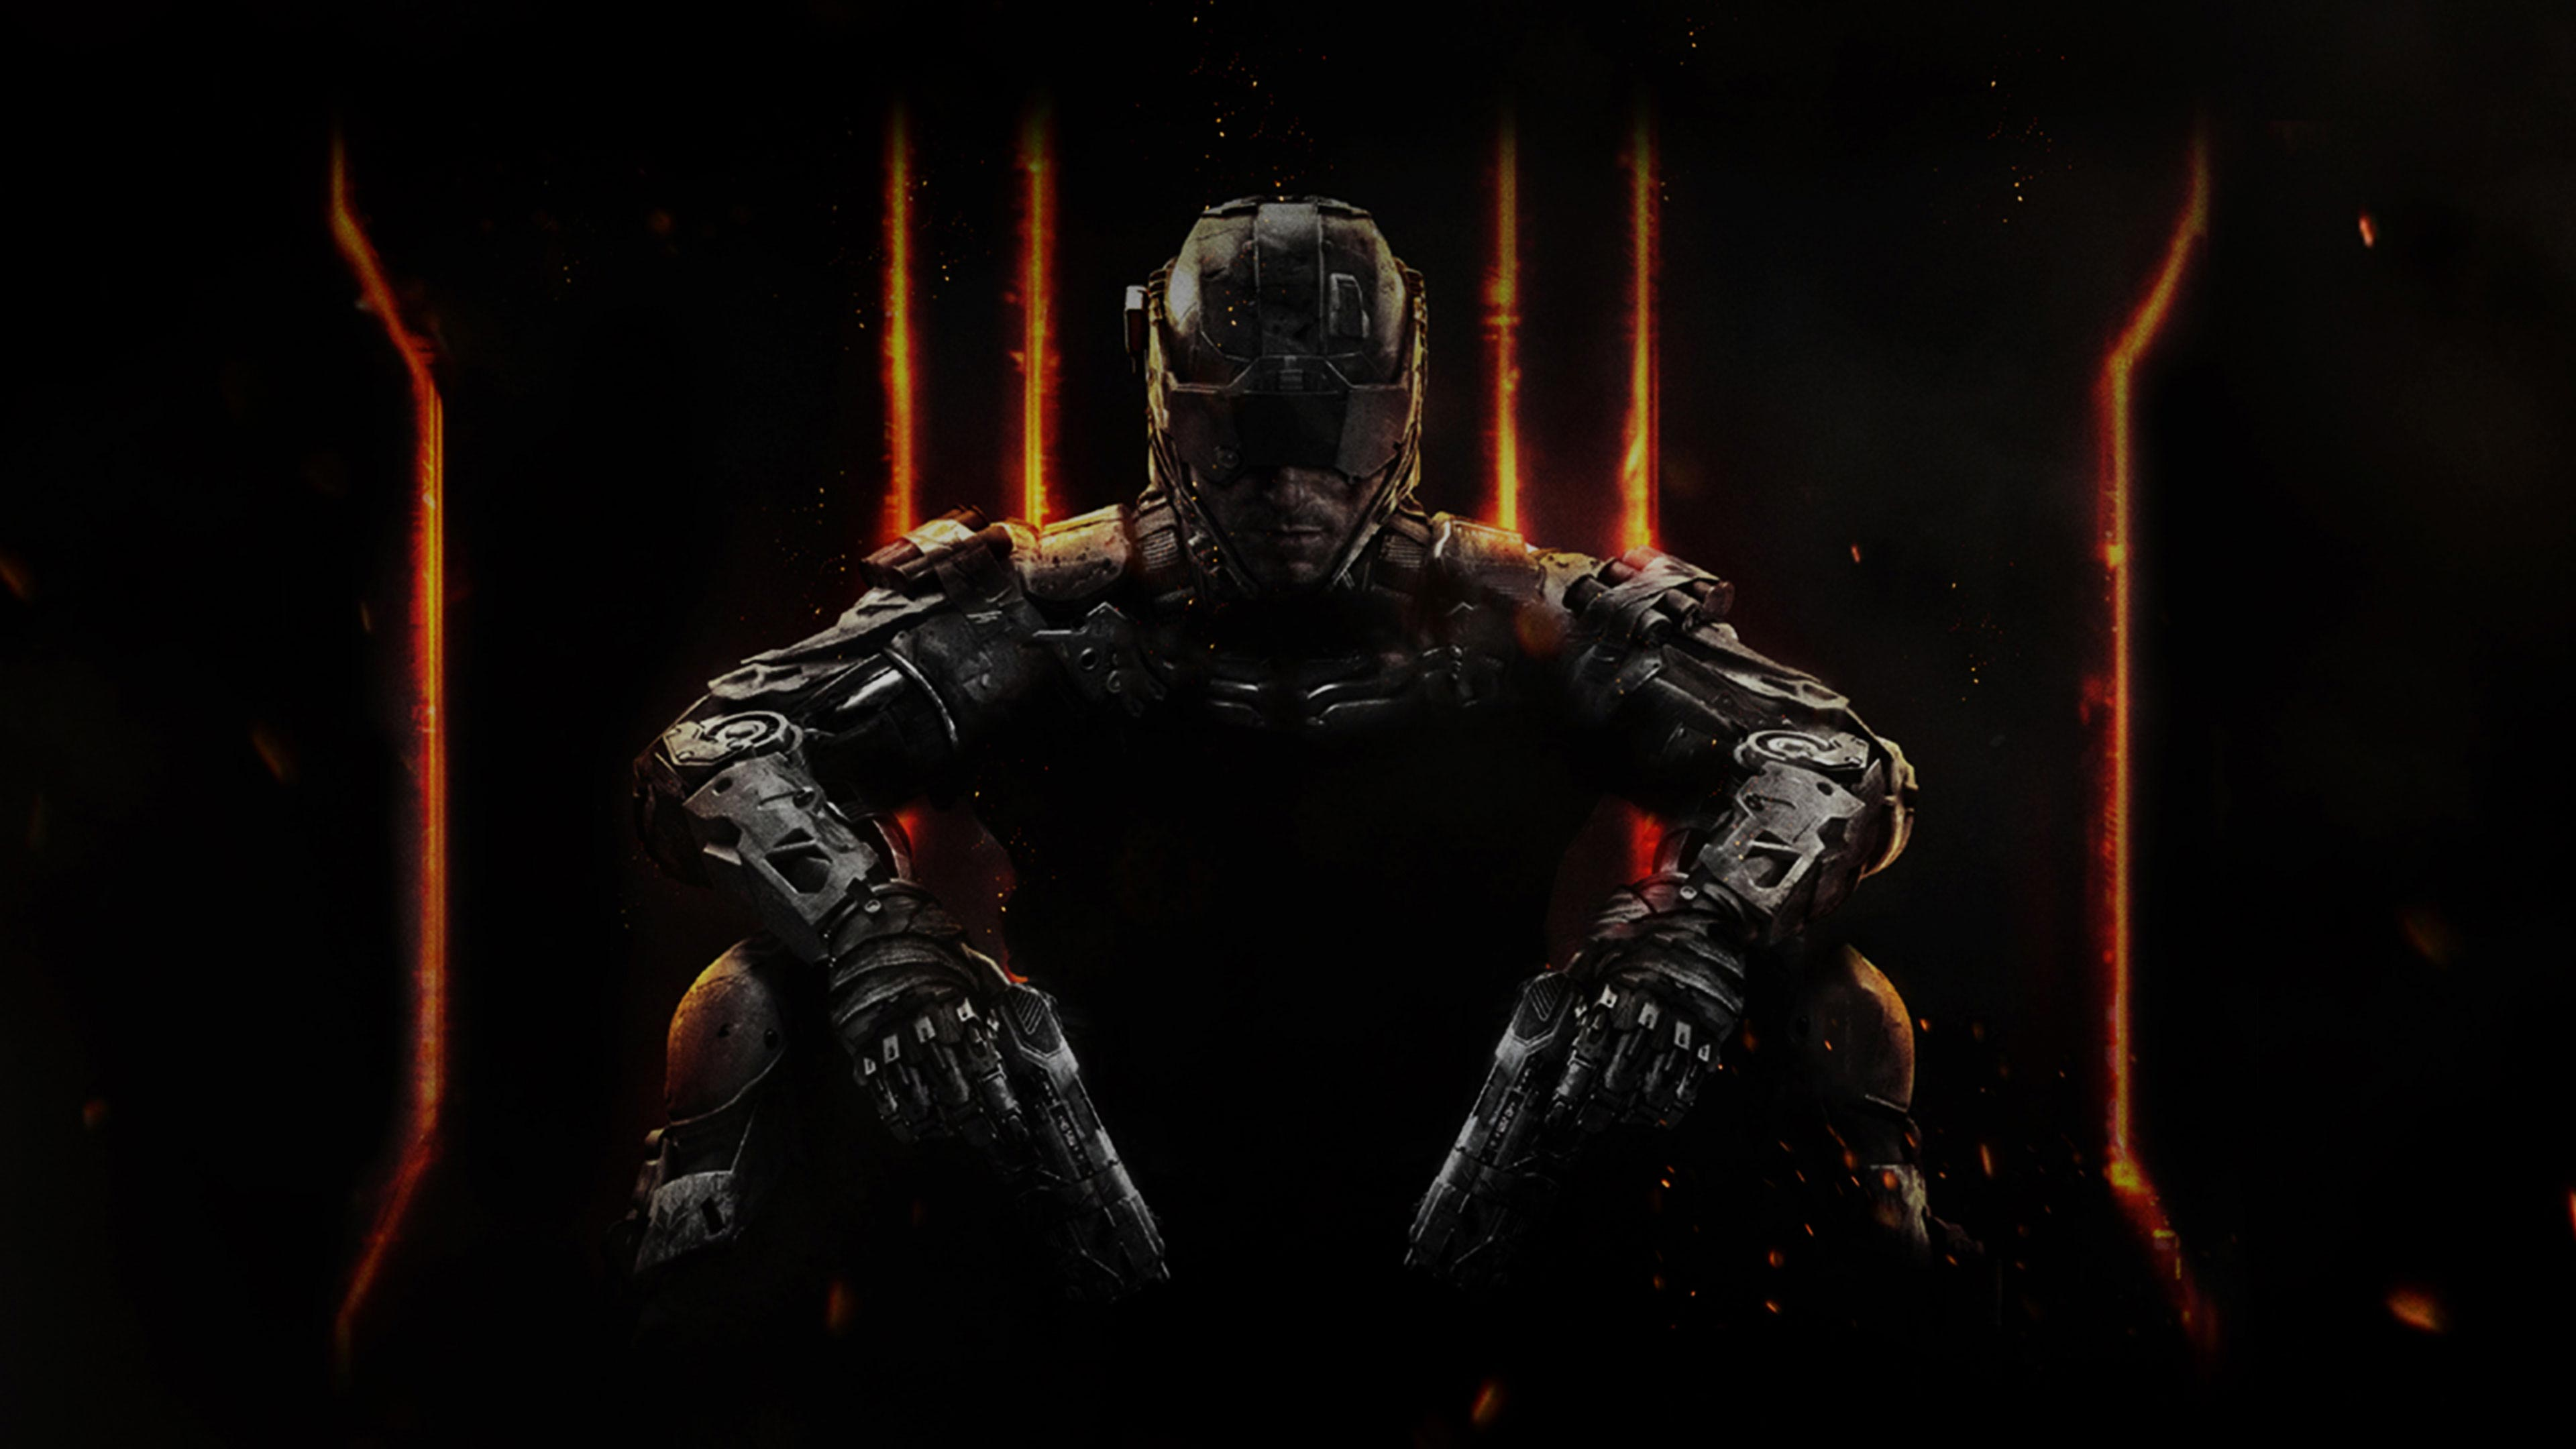 Black Ops 3 Wallpapers Black Ops 3 Forums 3840x2160